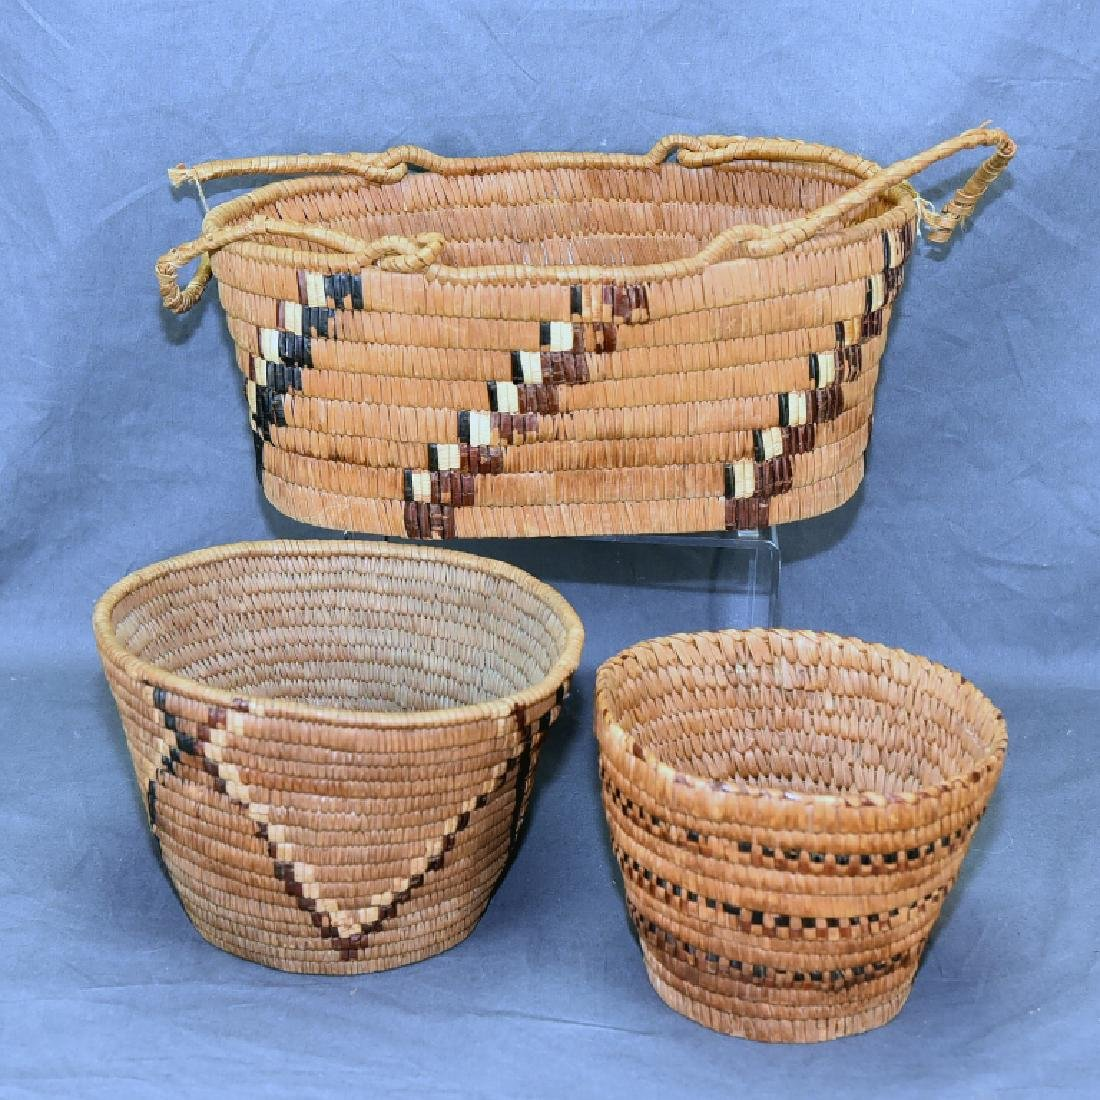 3 Thompson River Native American Baskets